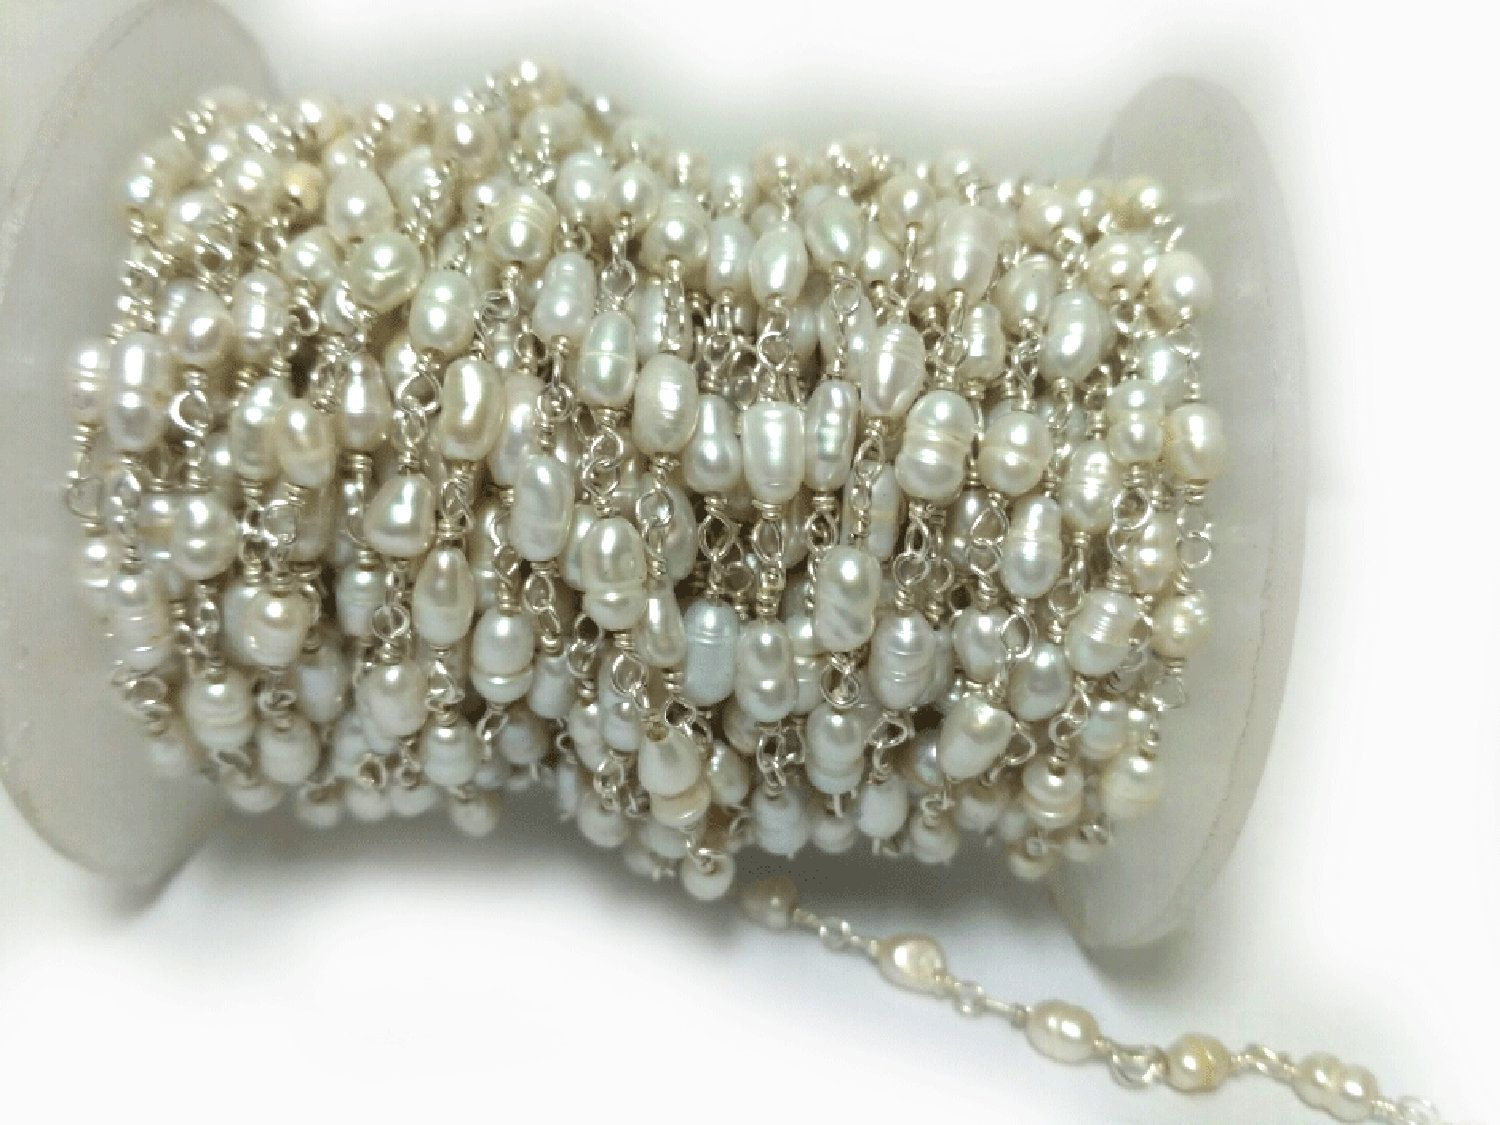 1 Feet Wholesale Rise Pearl Wire Wrapped 925 Silver Polished Chain - Pearl Beads Rosary Style Chain, Rosary jewelry making Chains By Foot #rosaryjewelry